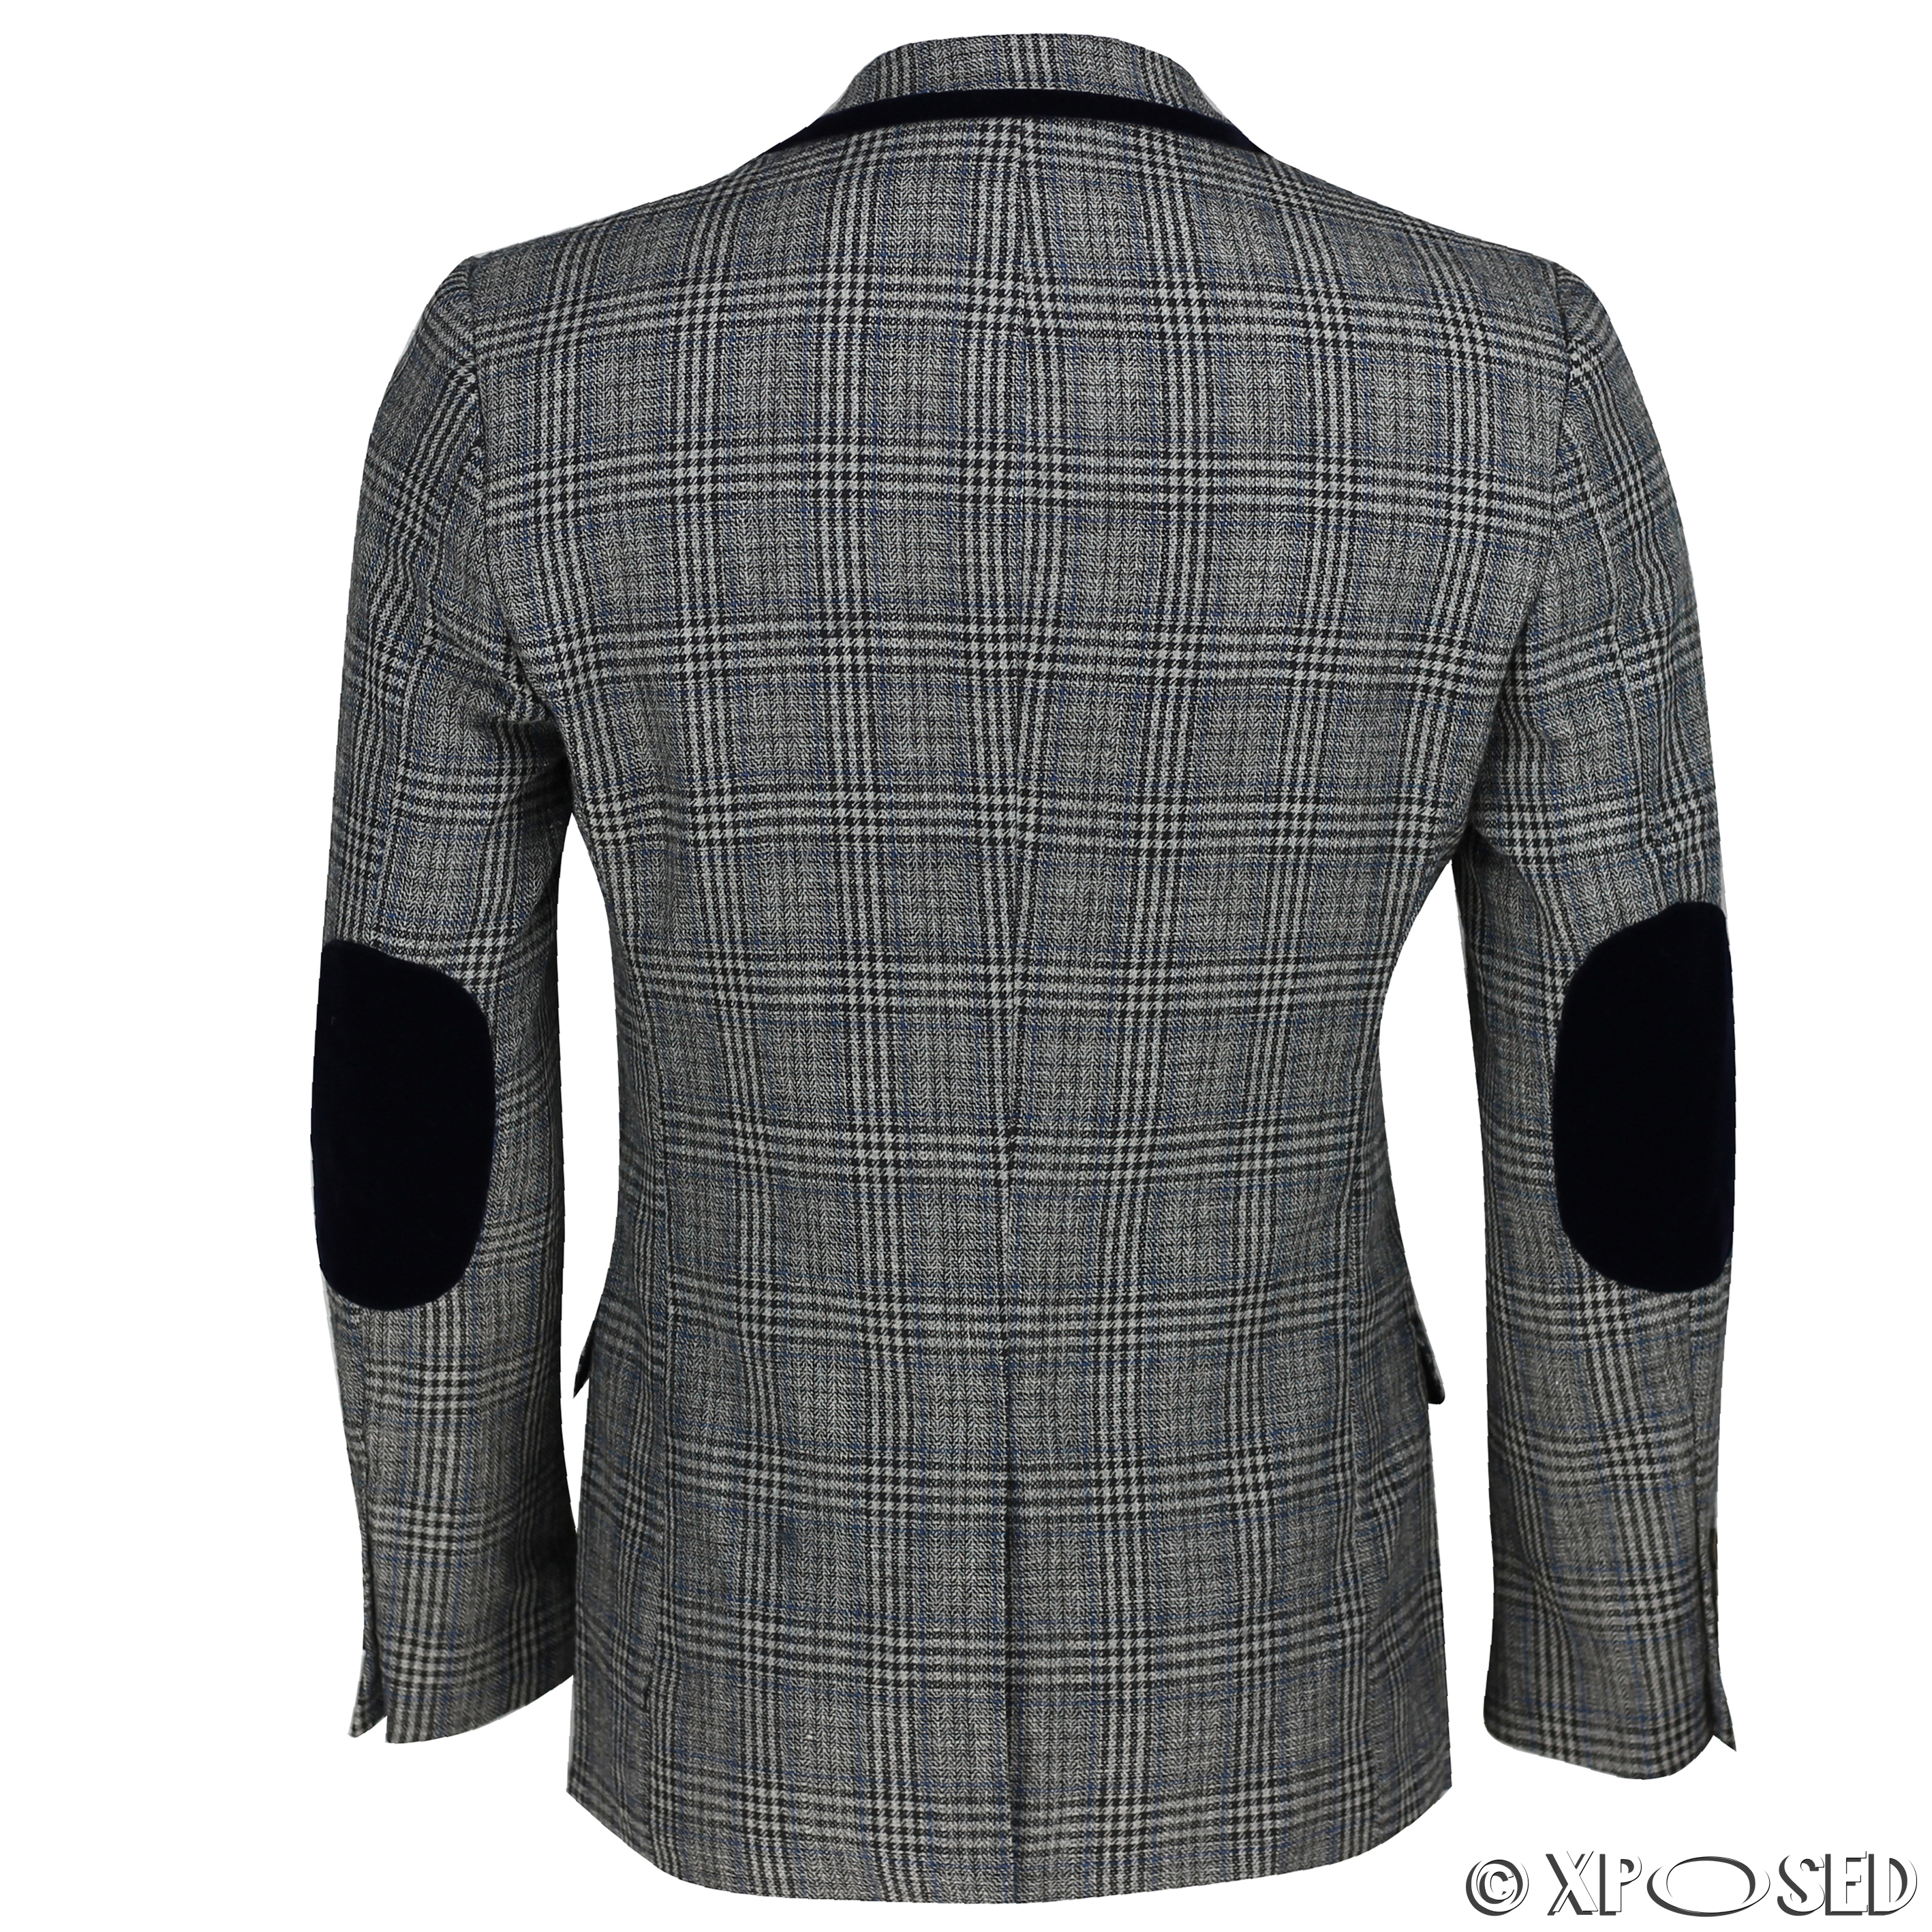 Blazers Jackets Mens: Mens Vintage Tweed Herringbone Check Blazer Velvet Elbow